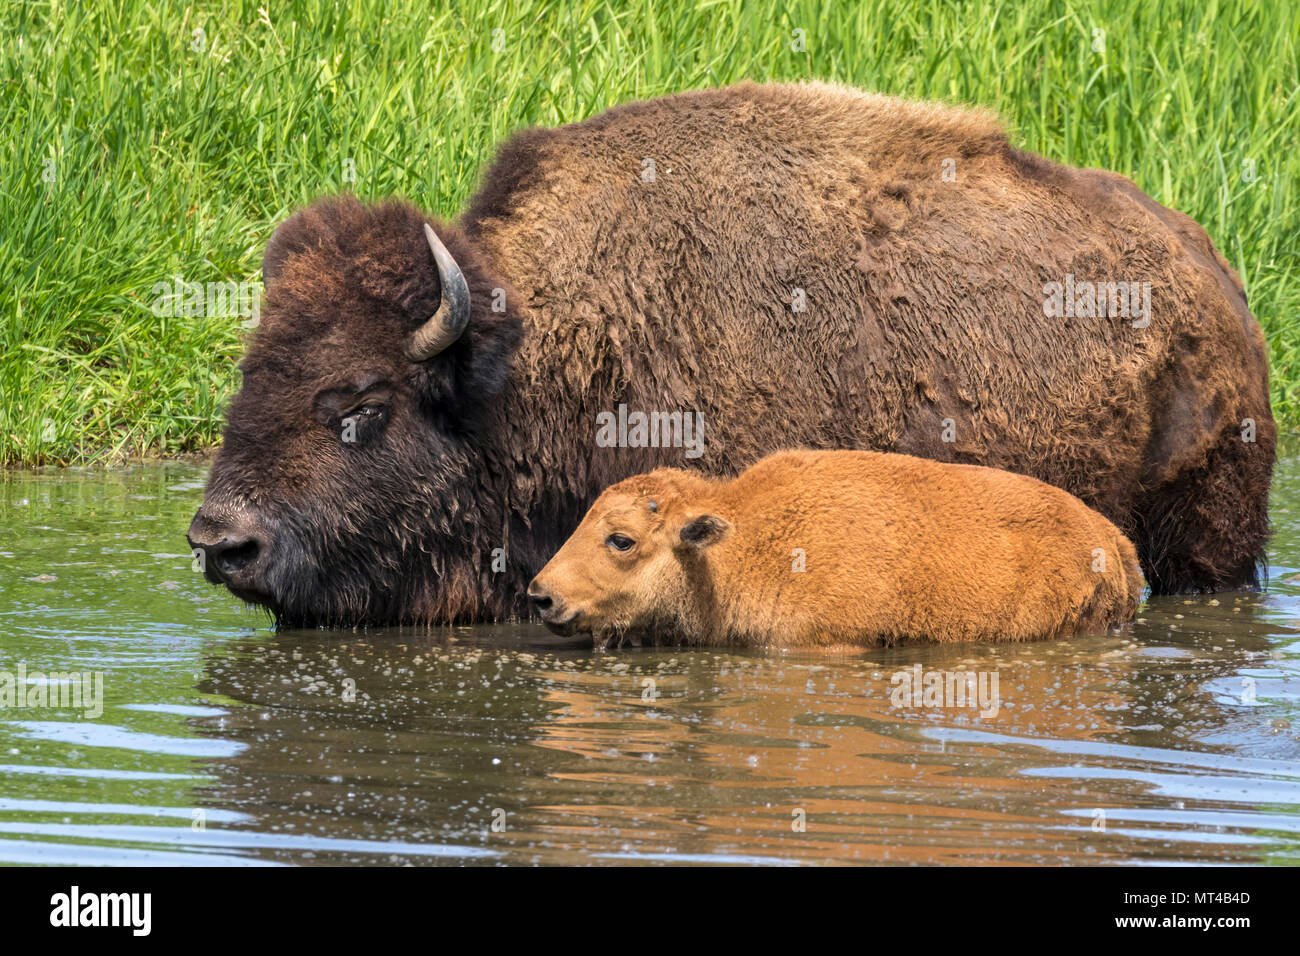 Cow and calf American bison (Bison bison) bathing in a lake during hot summer day, Iowa, USA. - Stock Image